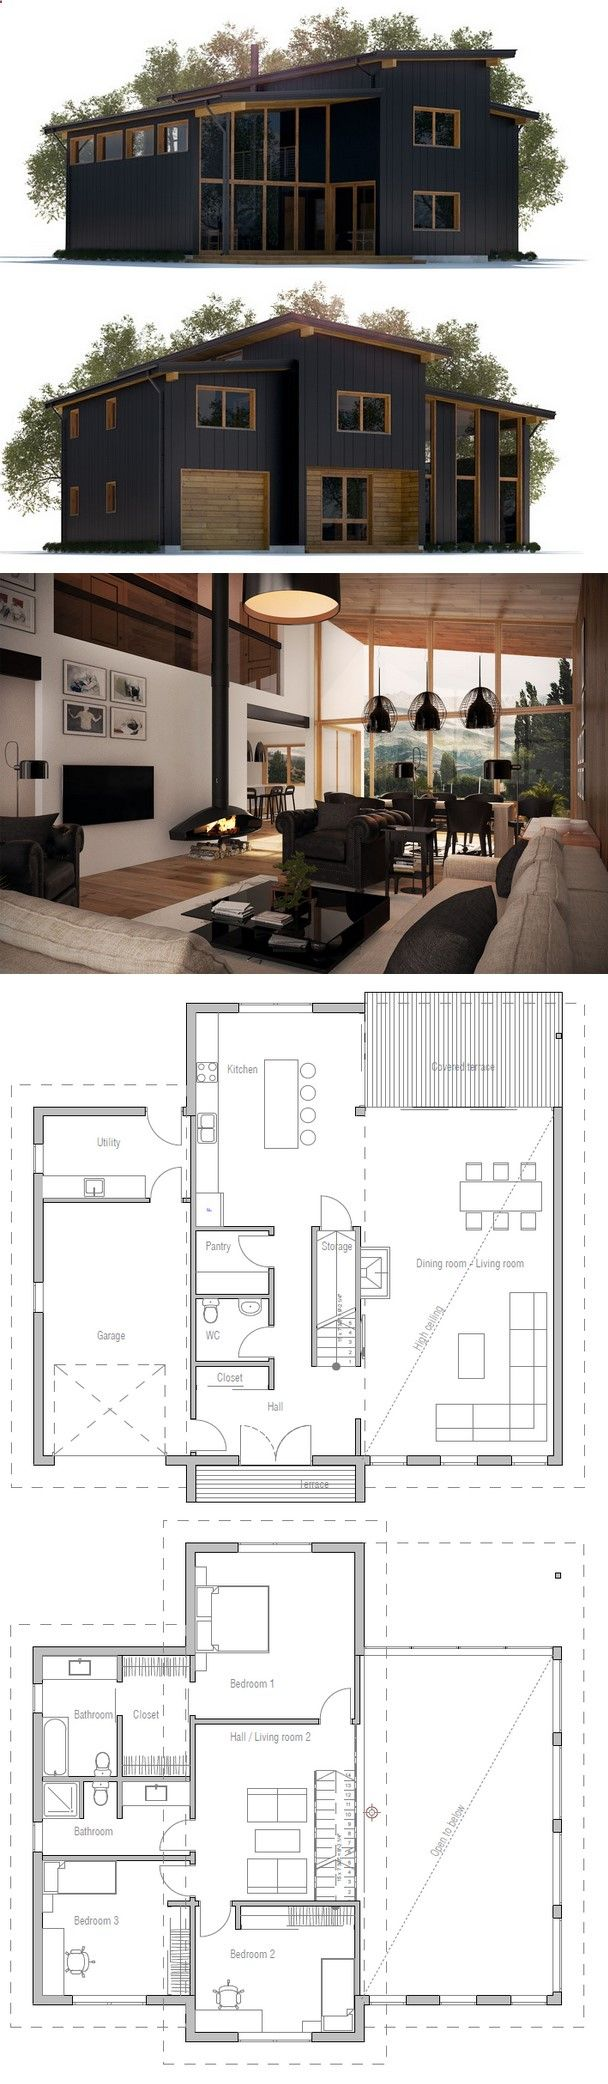 2 story master bedroom  Home Plan  Dream home  Pinterest  House Tiny houses and Future house